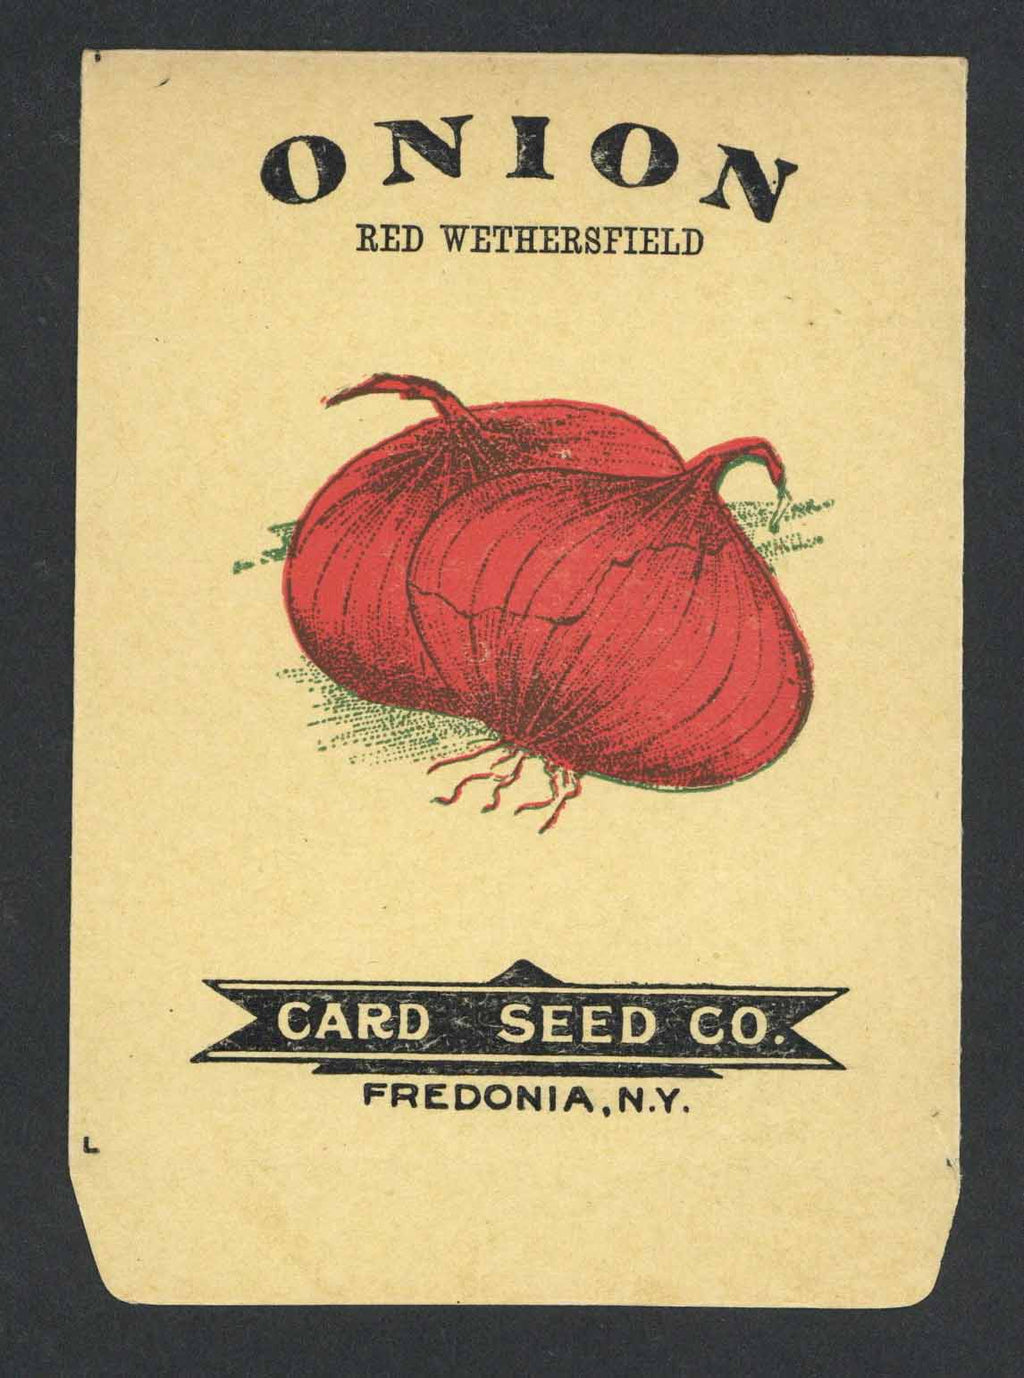 Onion Antique Card Seed Co. Seed Packet